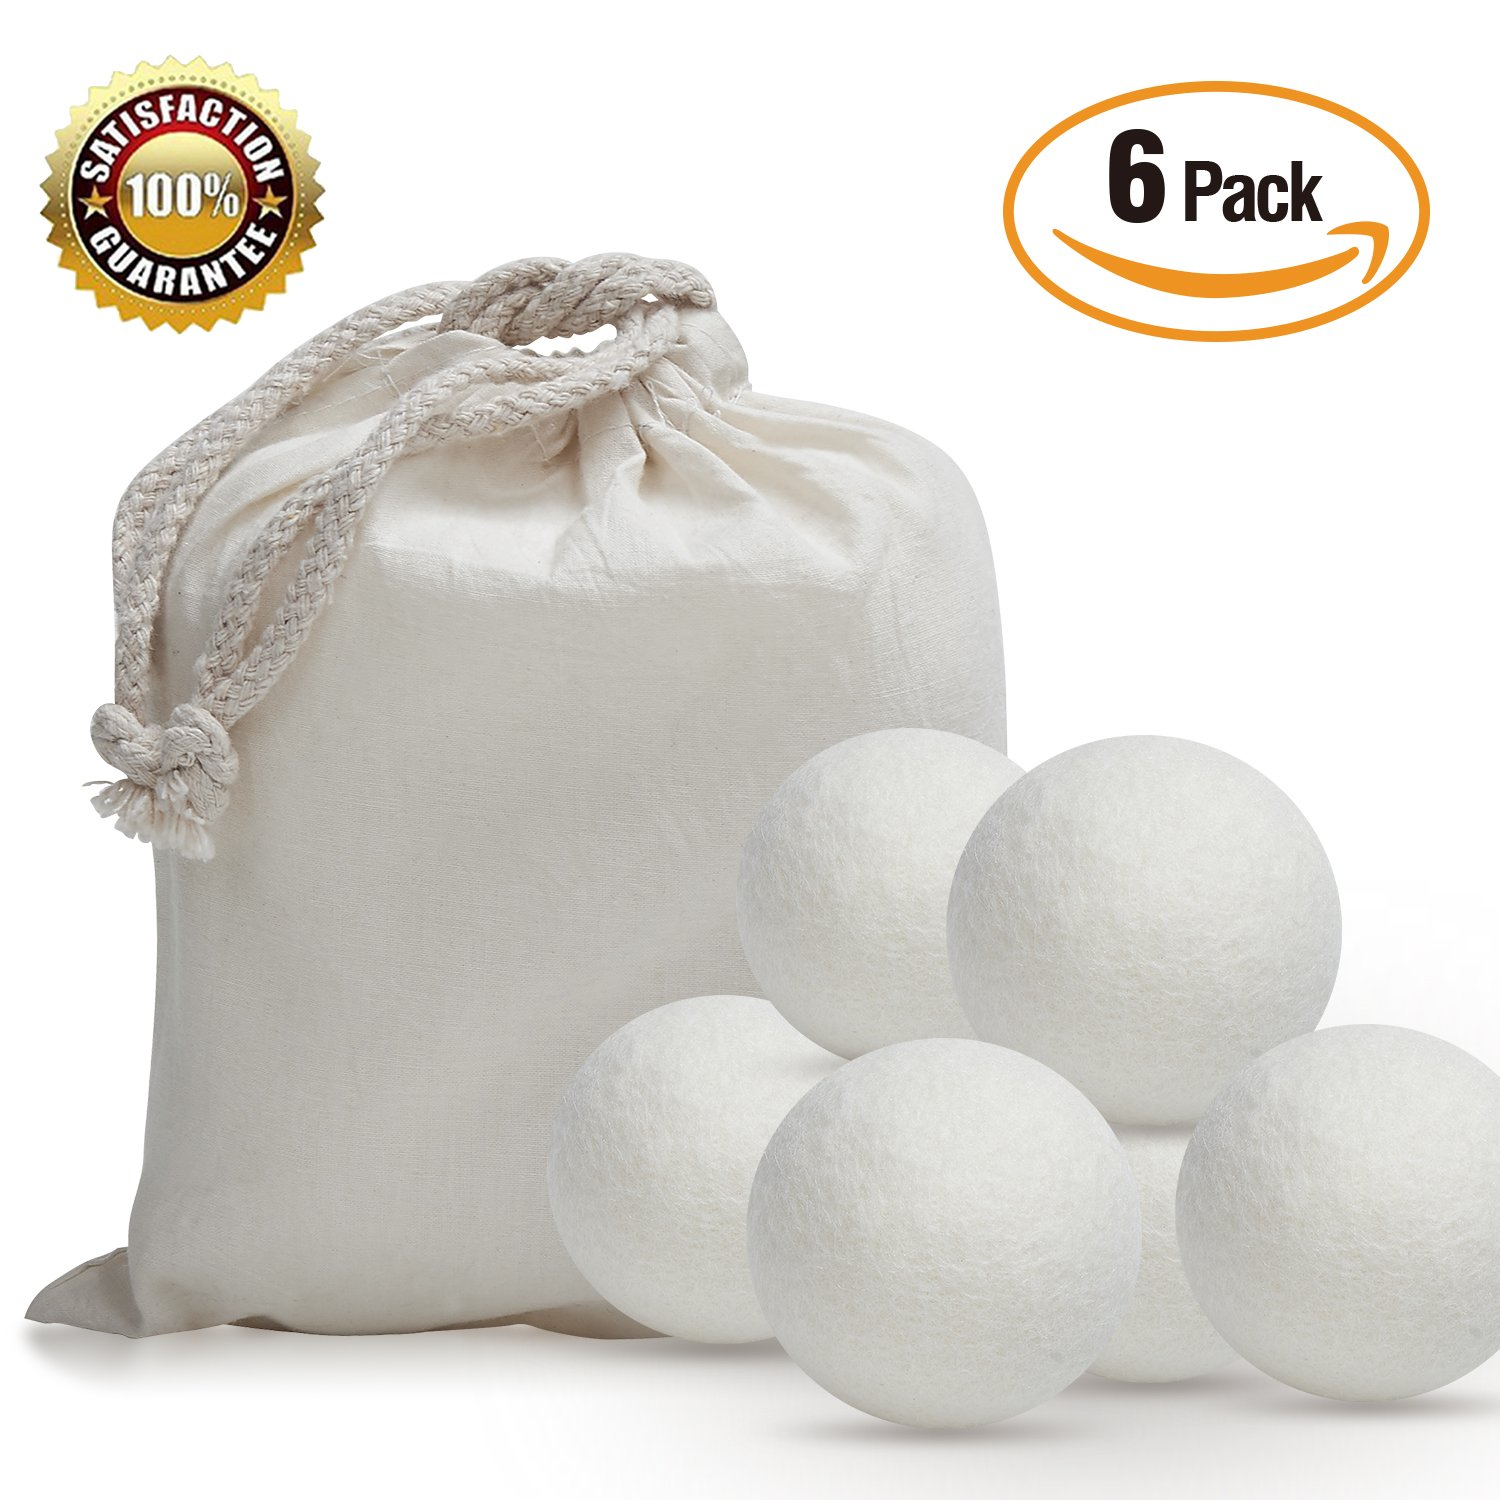 iPrimio Wool Dryer Balls – 6 Pack XL Reusable Eco-friendly Natural Fabric Softener – Reduces Dry Time, Non-Toxic and Chemical Free – Alternative to Plastic Balls